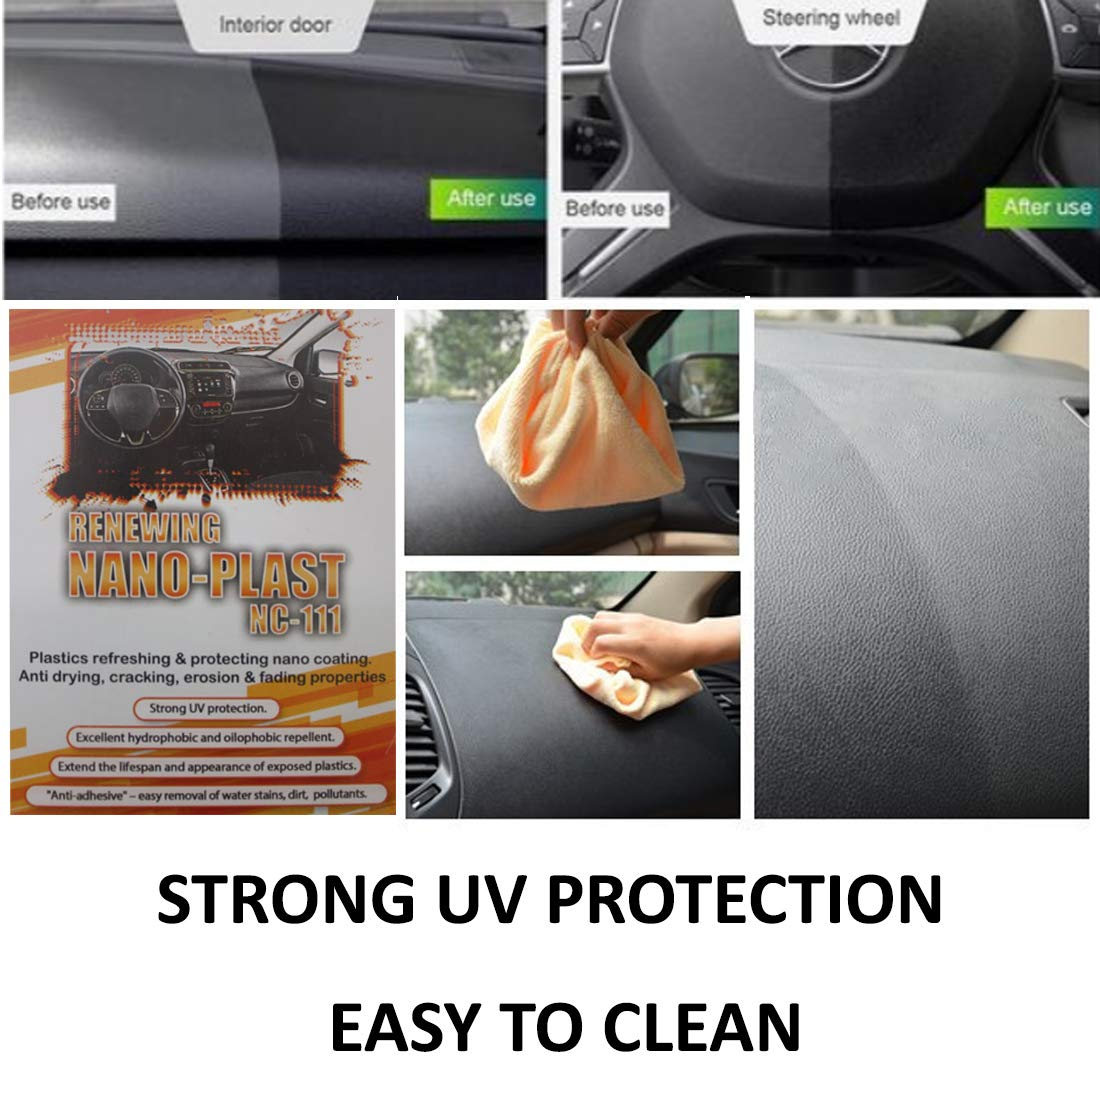 Nano NC-111 Renewing Dashboard Protector Car Plastic Protection [Anti Scratch and Dust] UV Sun Protection for Dash Board - Prevents Cracking Water and Oil Repellent [Easy to Clean Effect] 30ml by NANO-Z COATING (Image #3)